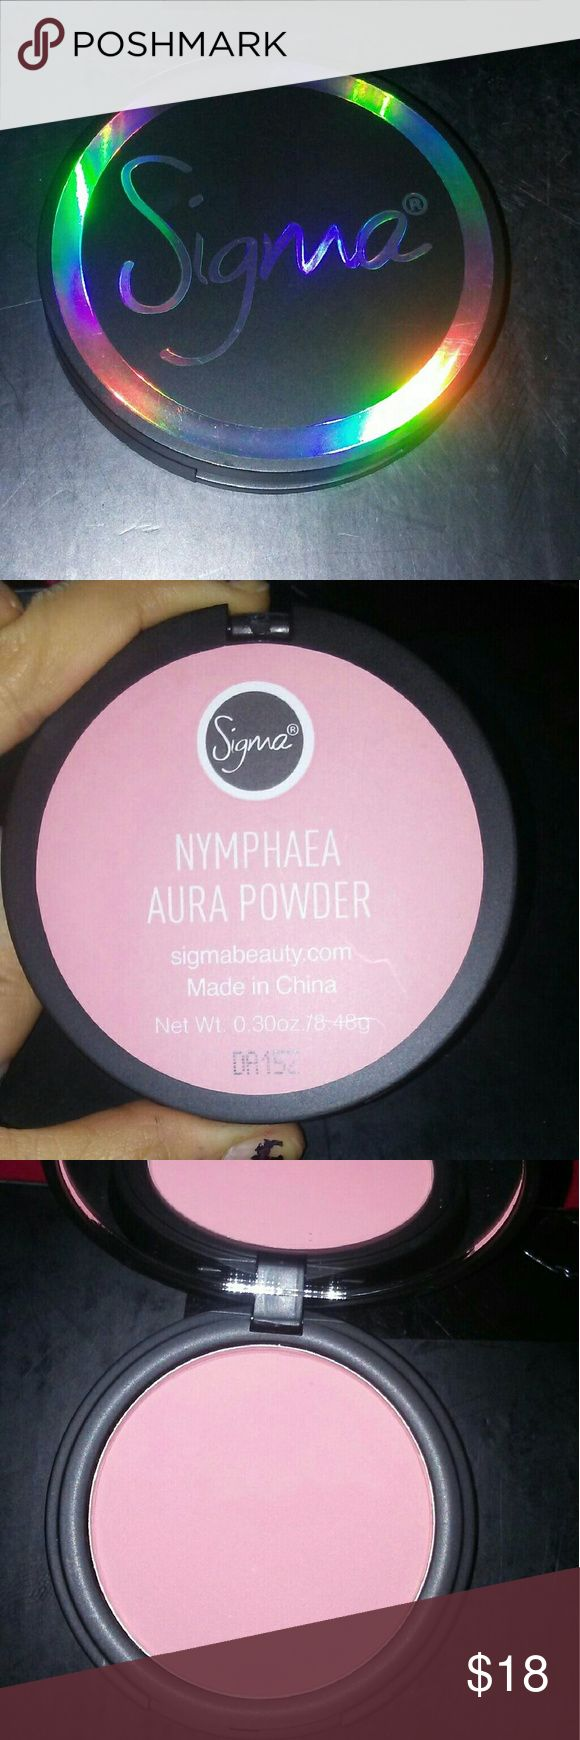 SIGMA BEAUTY AURA POWDER IN NYMPHEA Brand new never used